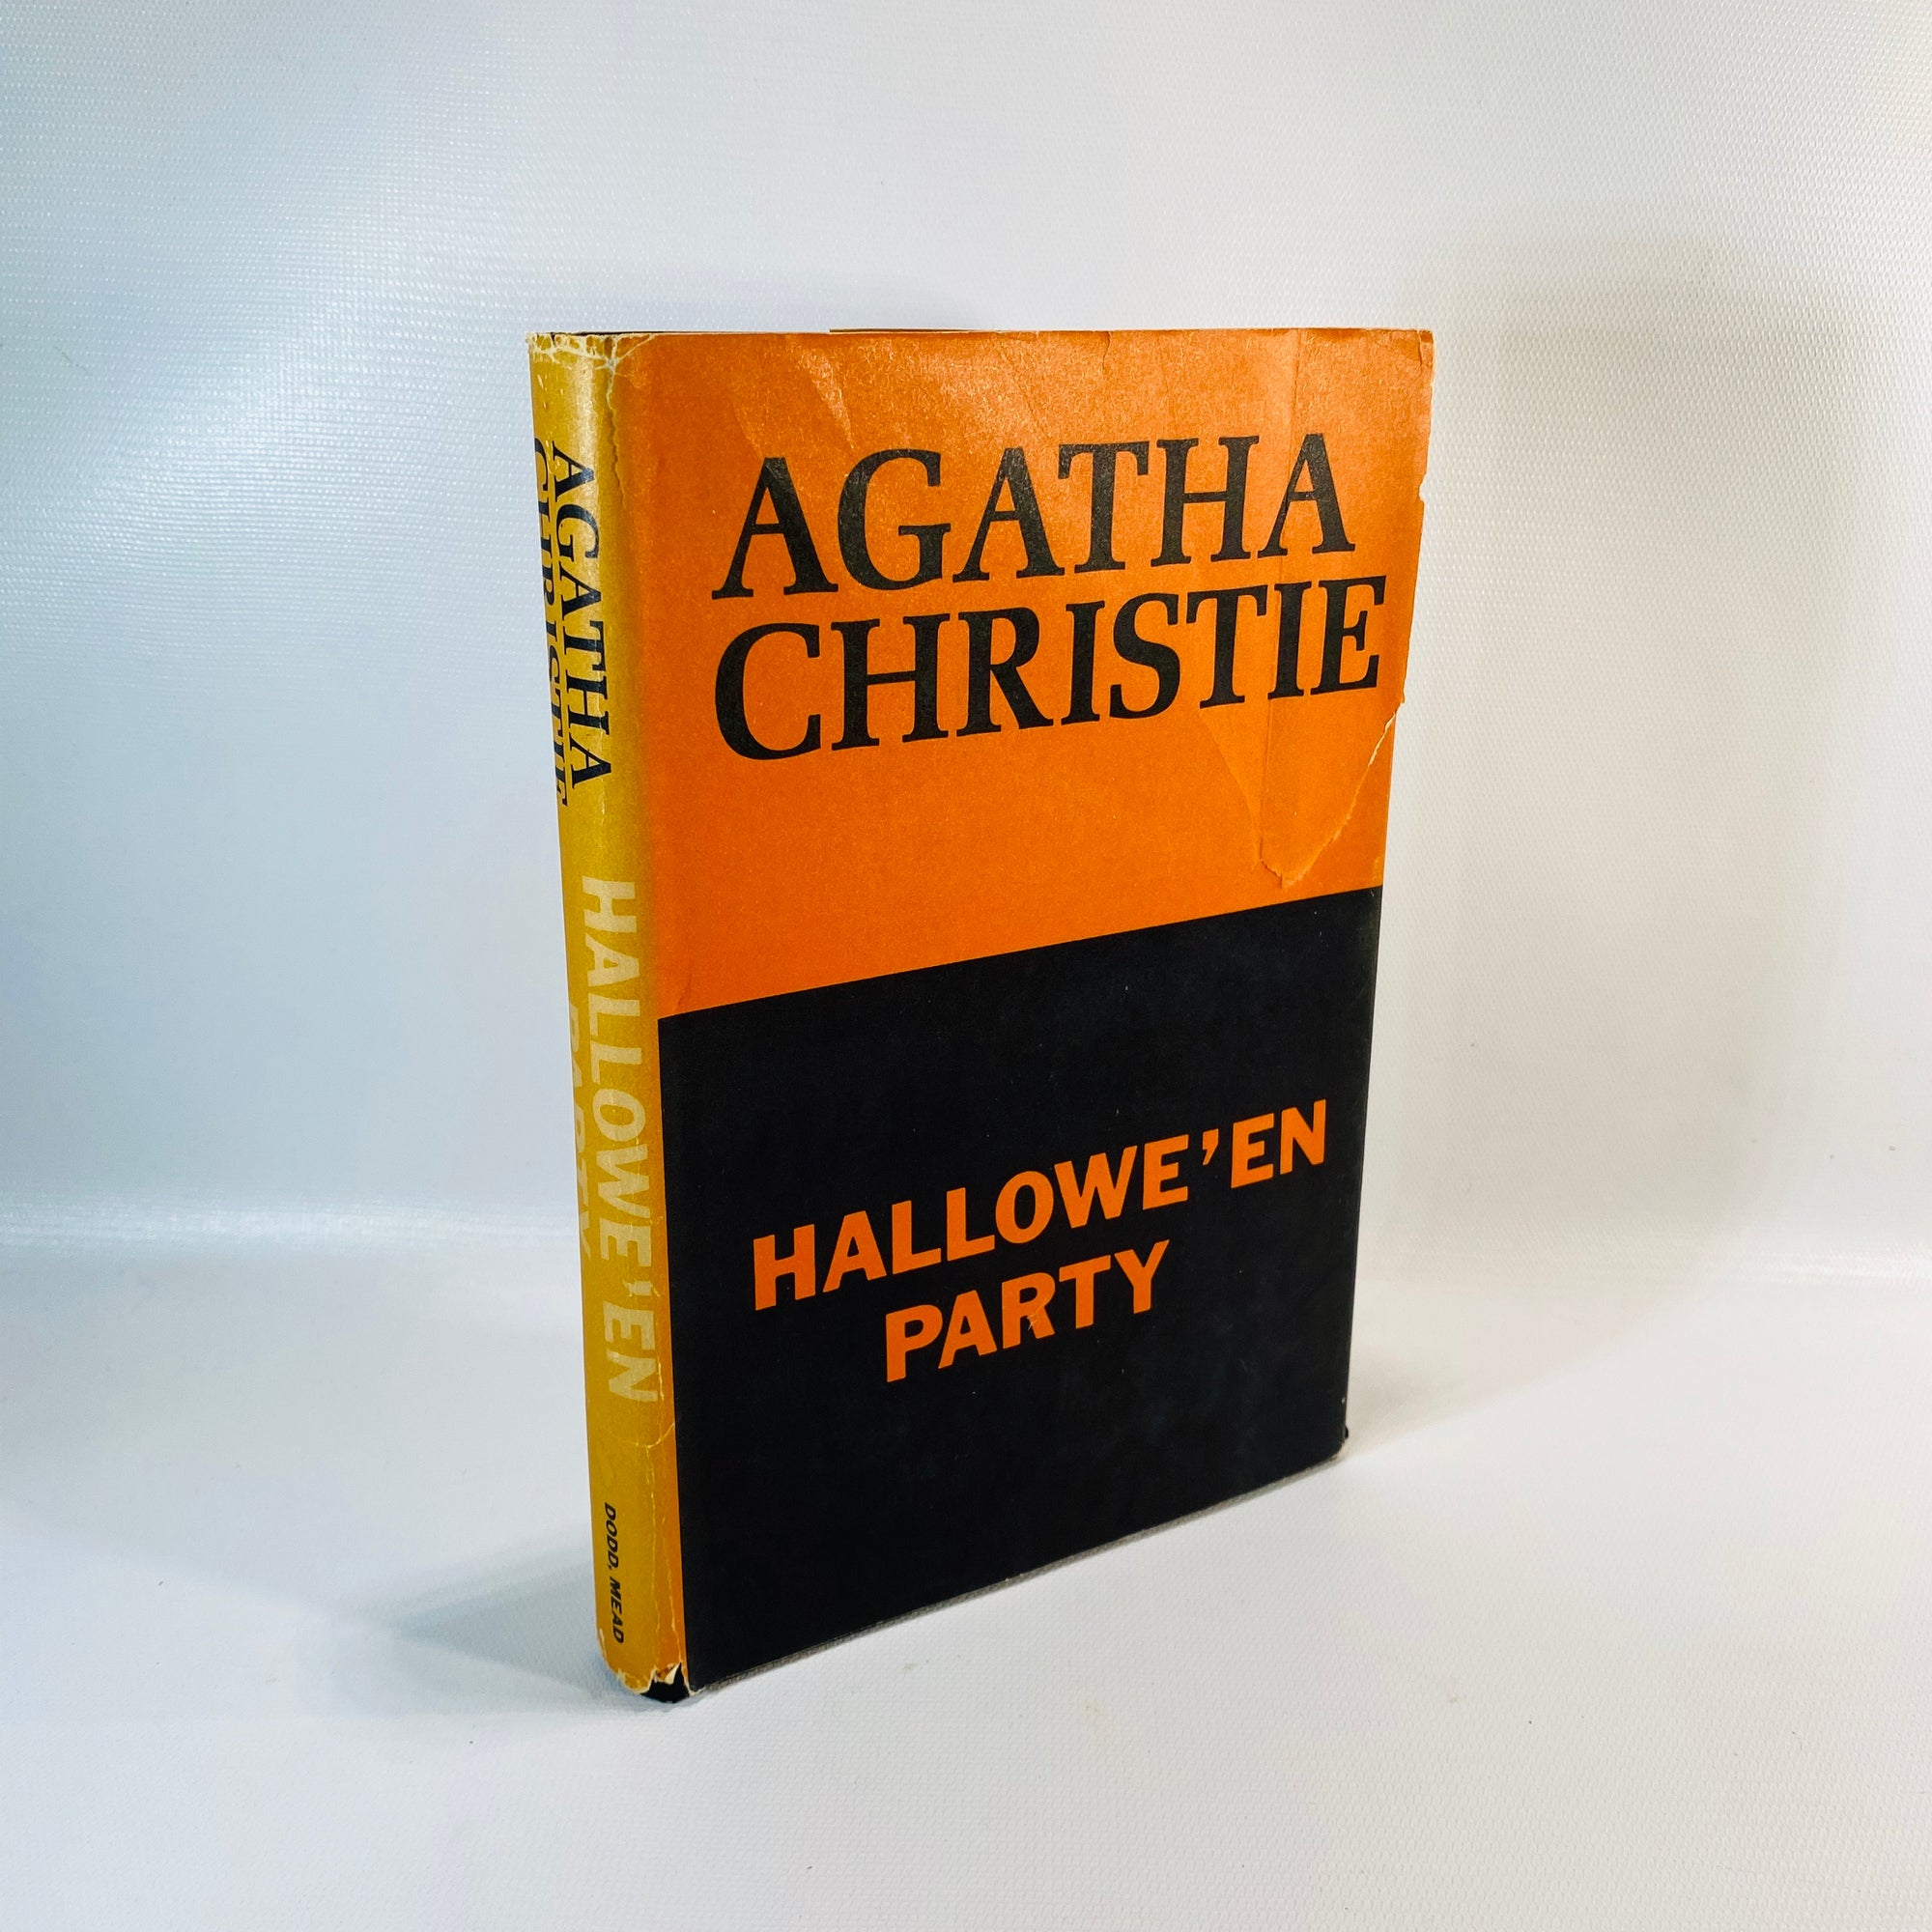 Hallowe'en Party by Agatha Christie 1969-Reading Vintage